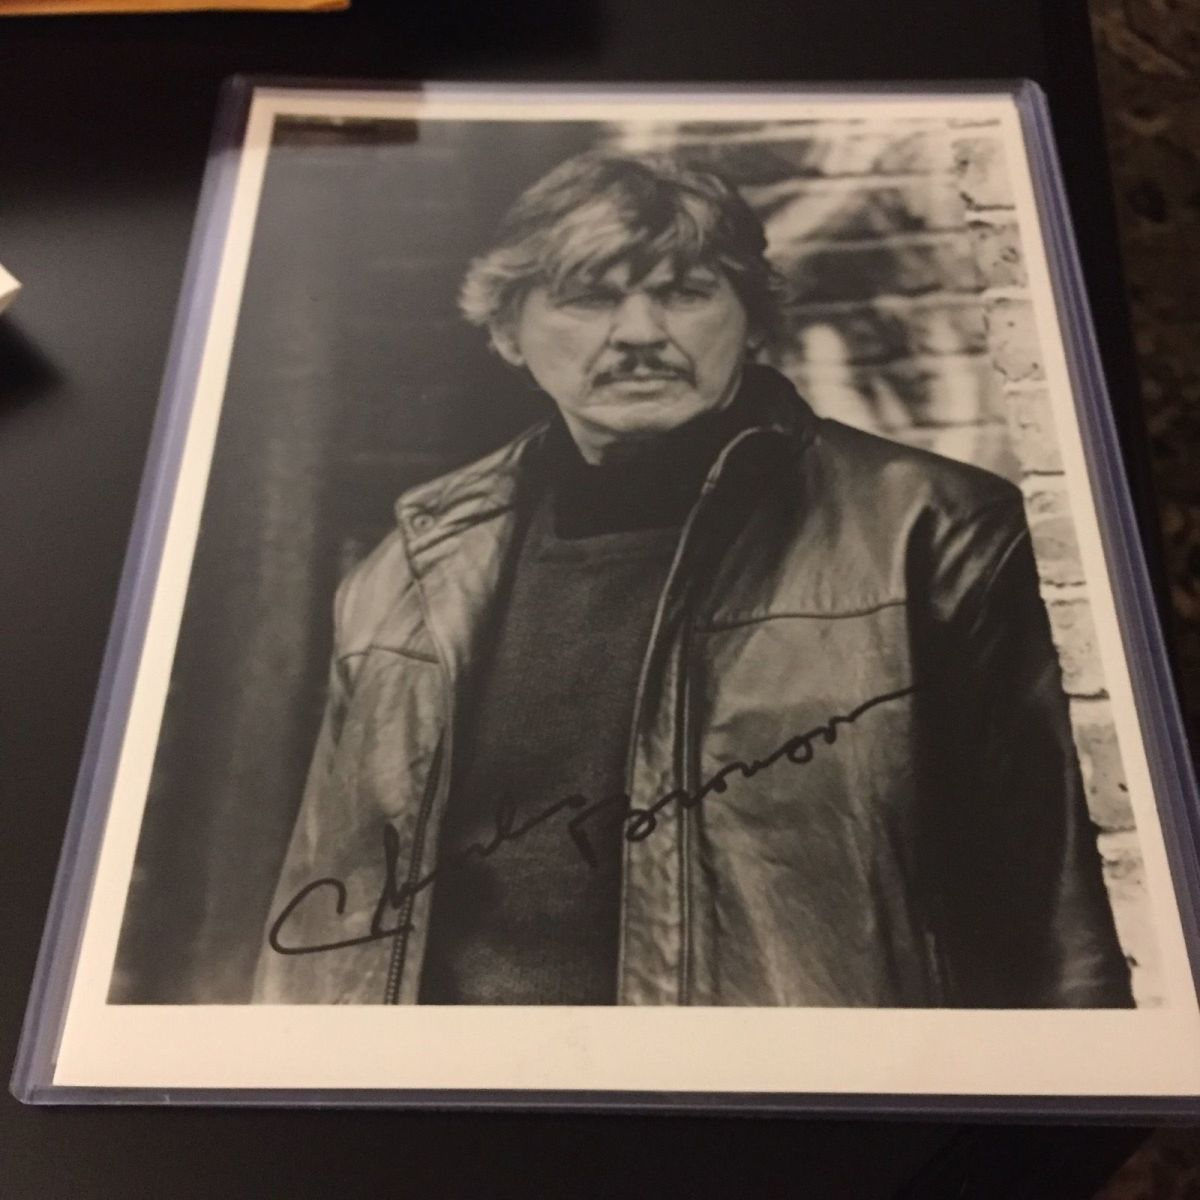 My newest addition to my collection I got at auction price.(Very pleased.) Charles Bronson is a legend known for tough spirited characters. We lost him in 2003 at the age of 81.